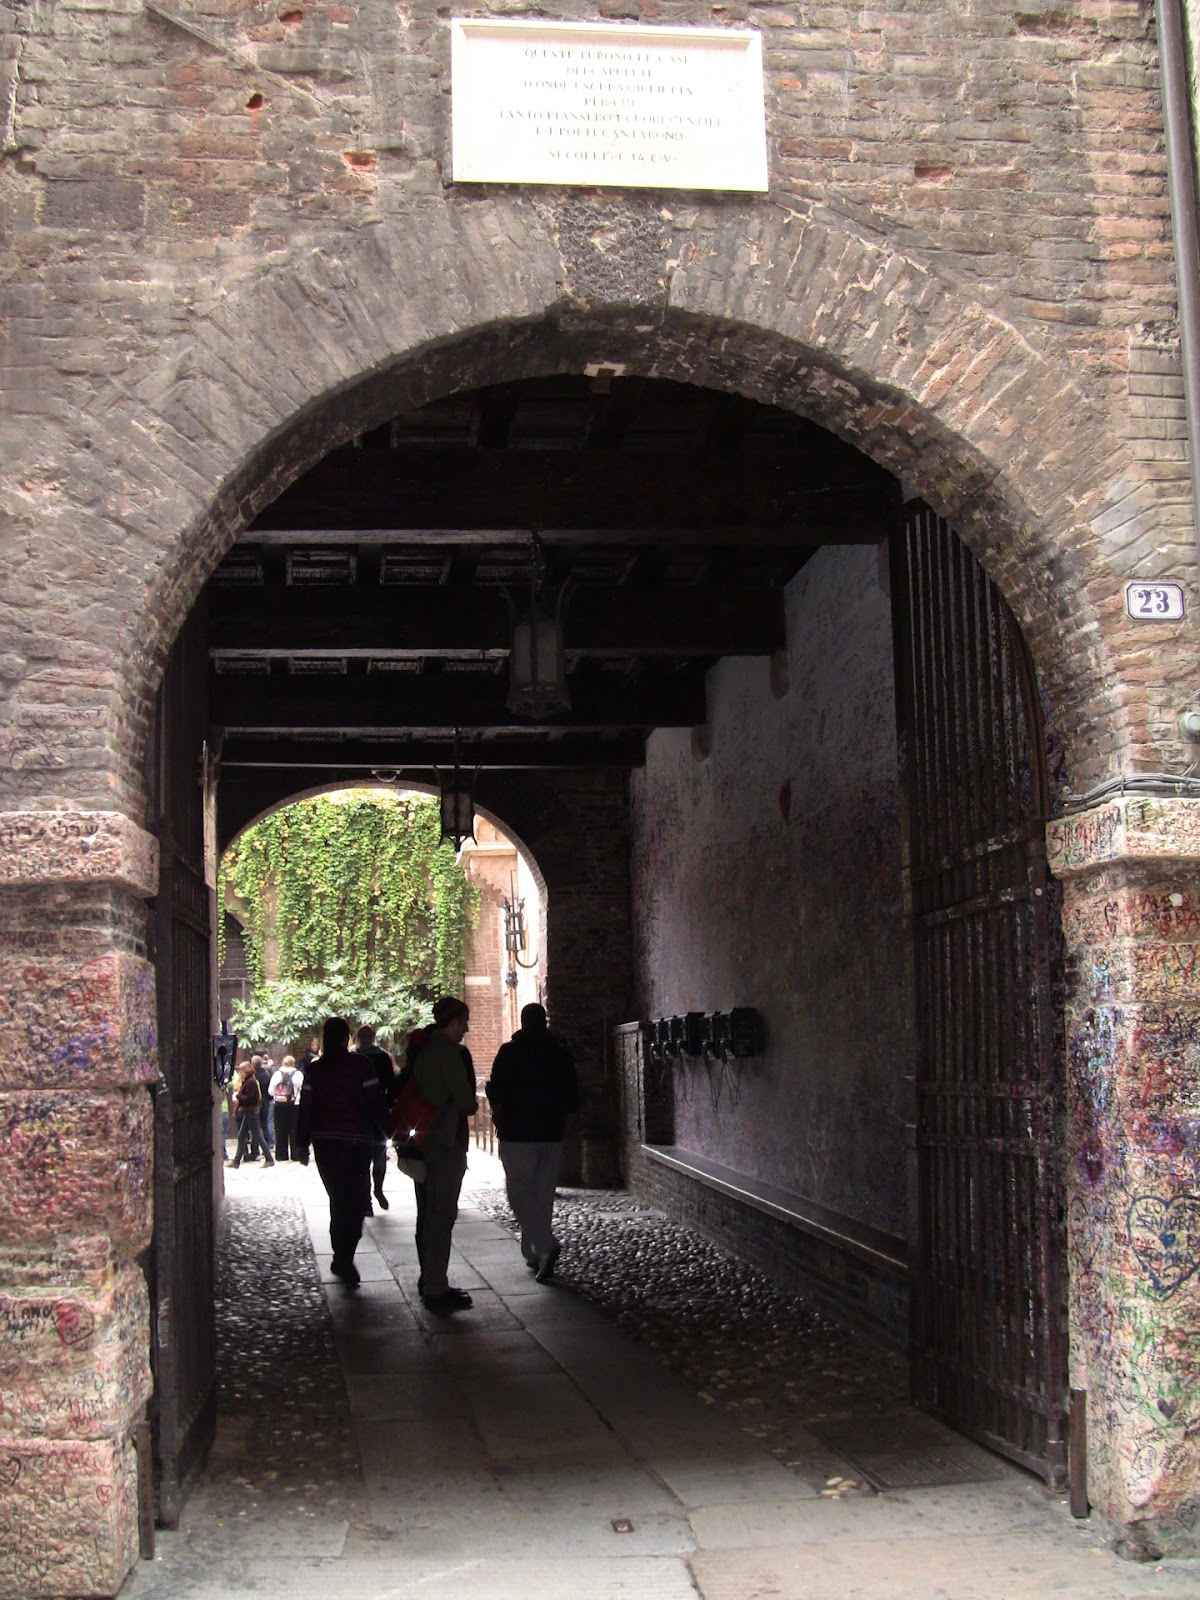 Entrance archway into Juliet's House and Courtyard in Verona. Photo: Gail Keller, WineTrekkerTV.com.